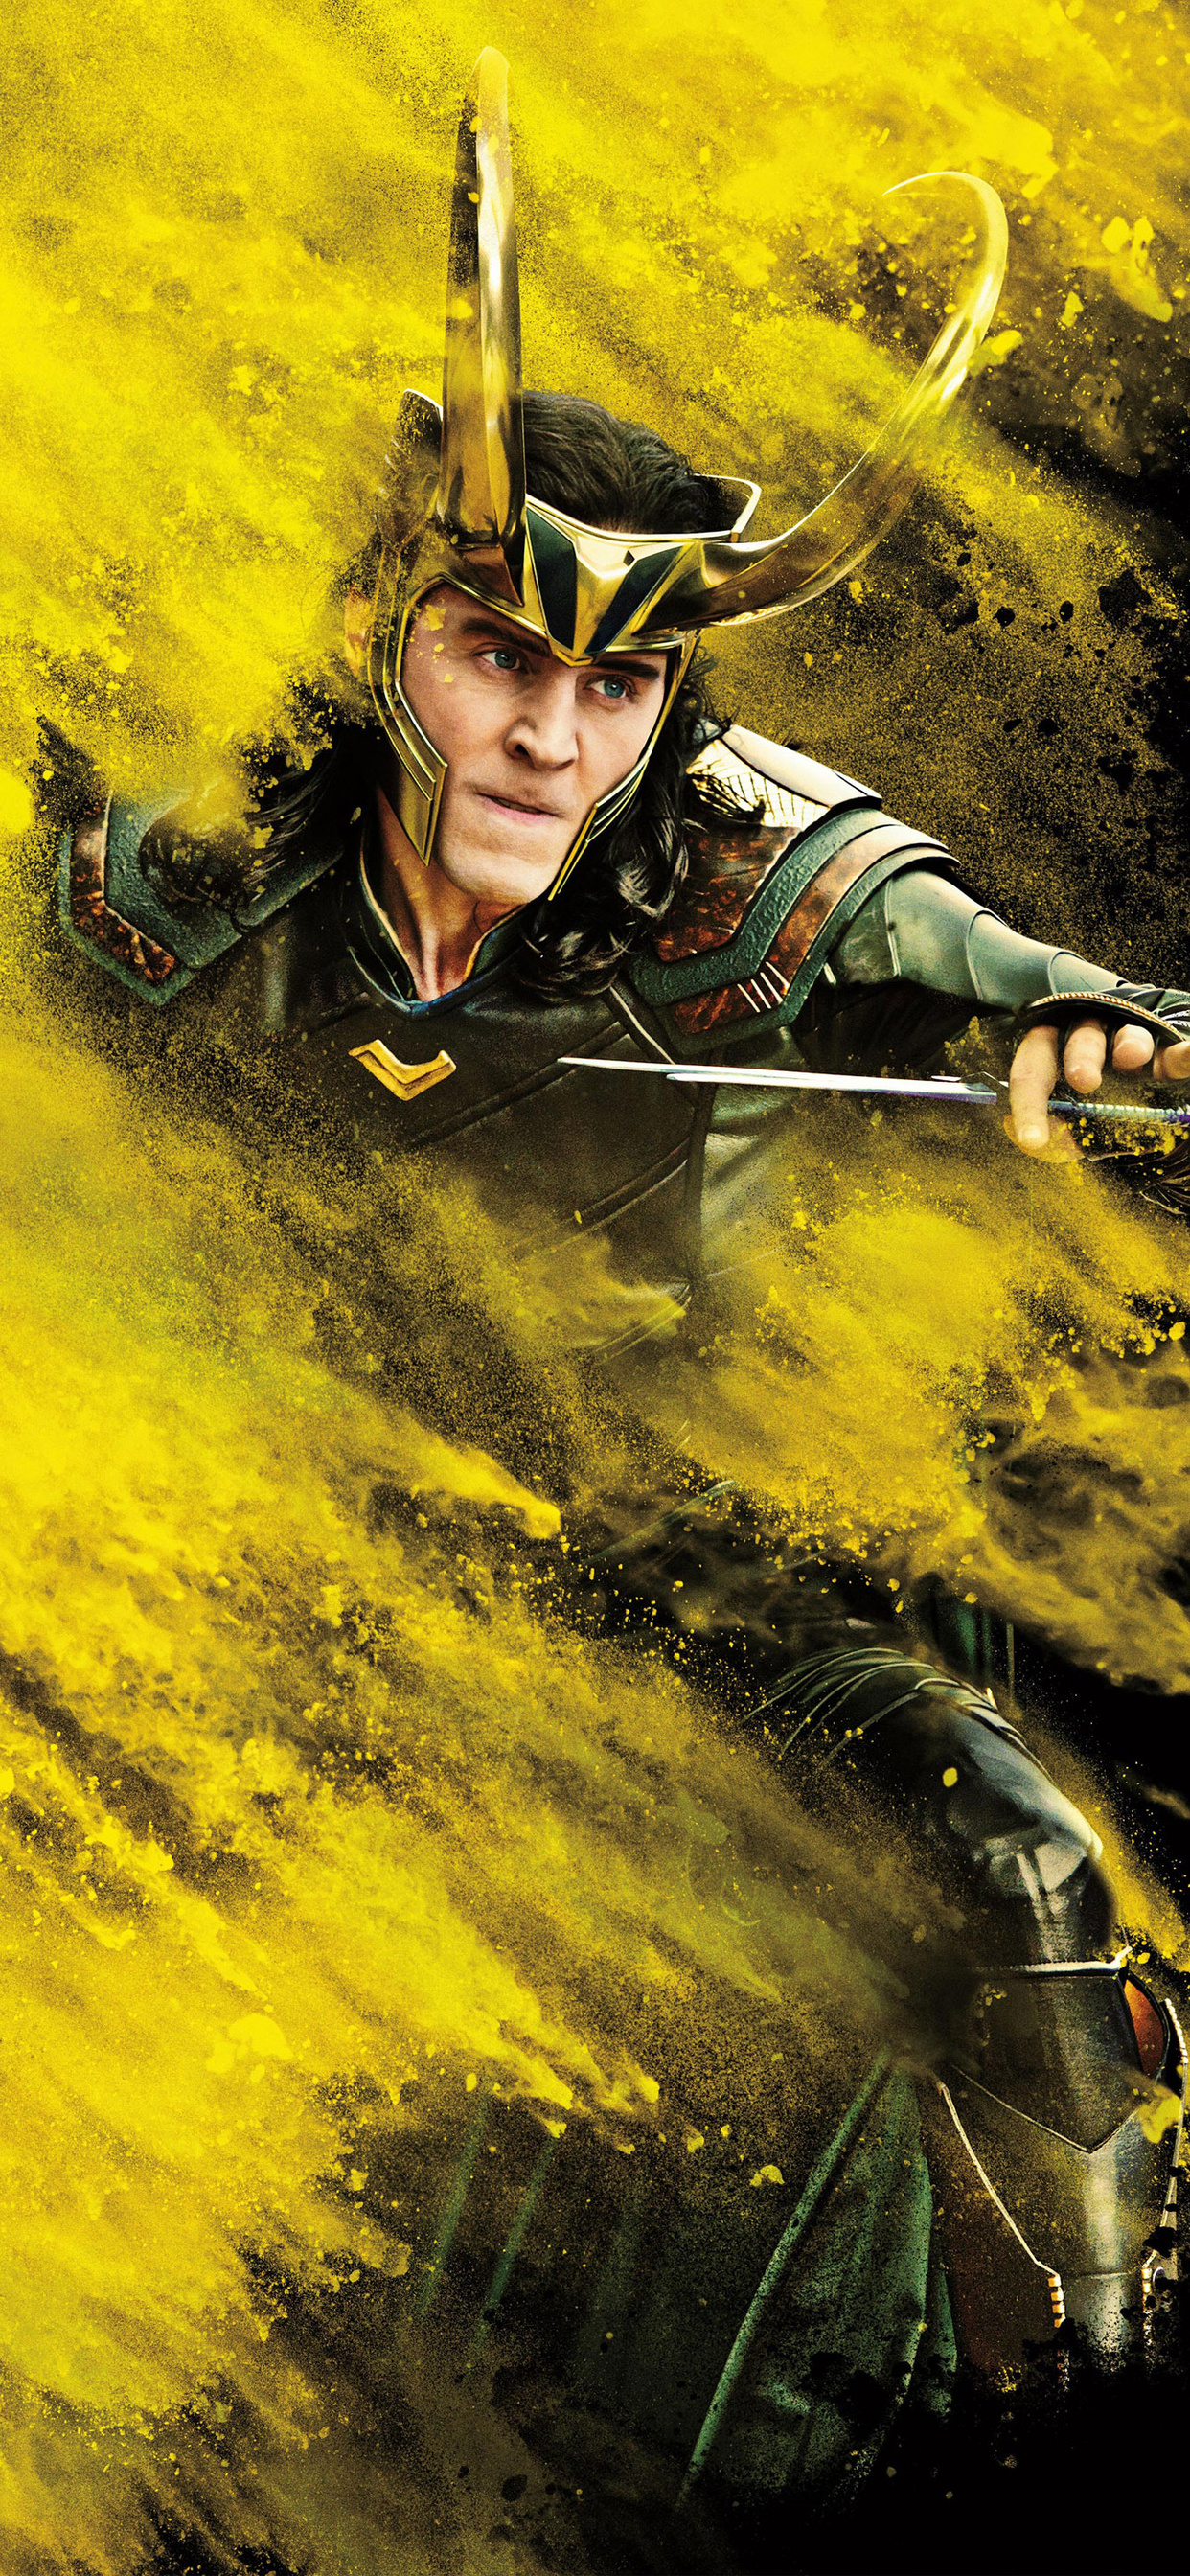 1242x2688 Loki Thor Ragnarok 2017 5k Iphone Xs Max Hd 4k Wallpapers